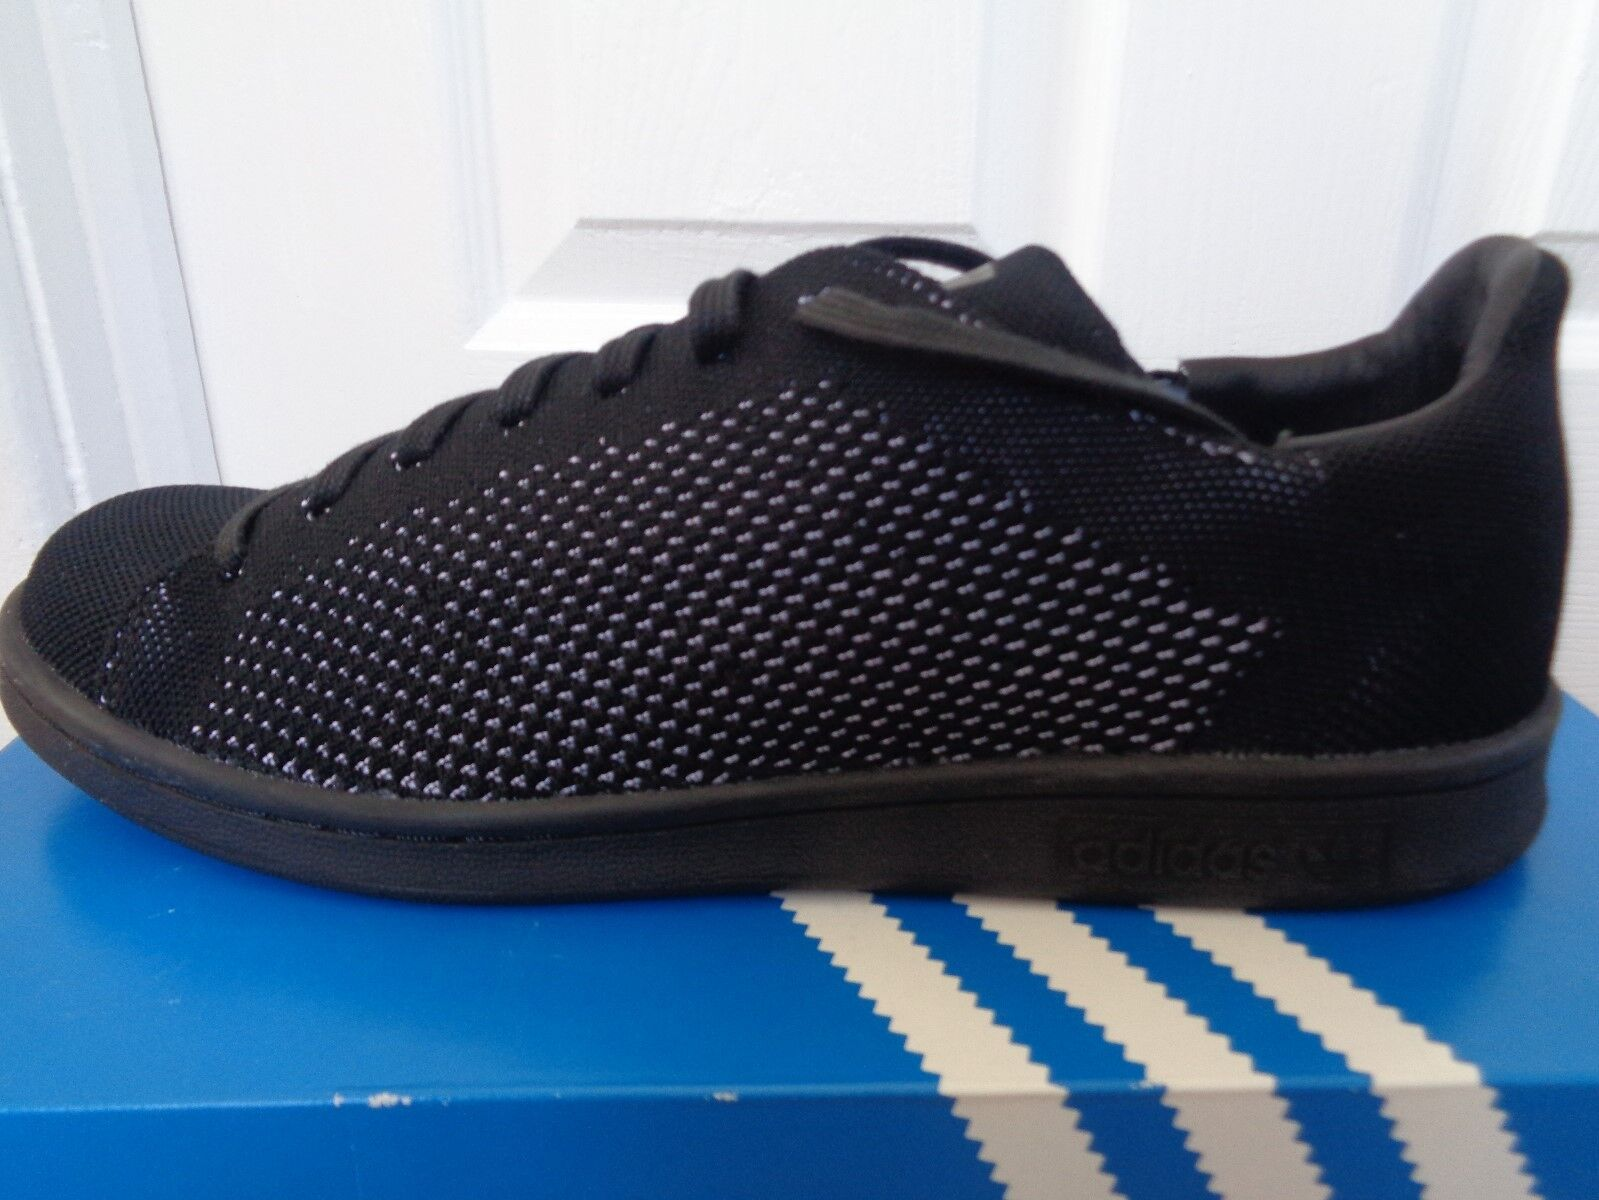 Bdidas Stan Smith mens trainers sneakers shoes S80065 uk 8 eu 42 us 8.5 NEW+BOX